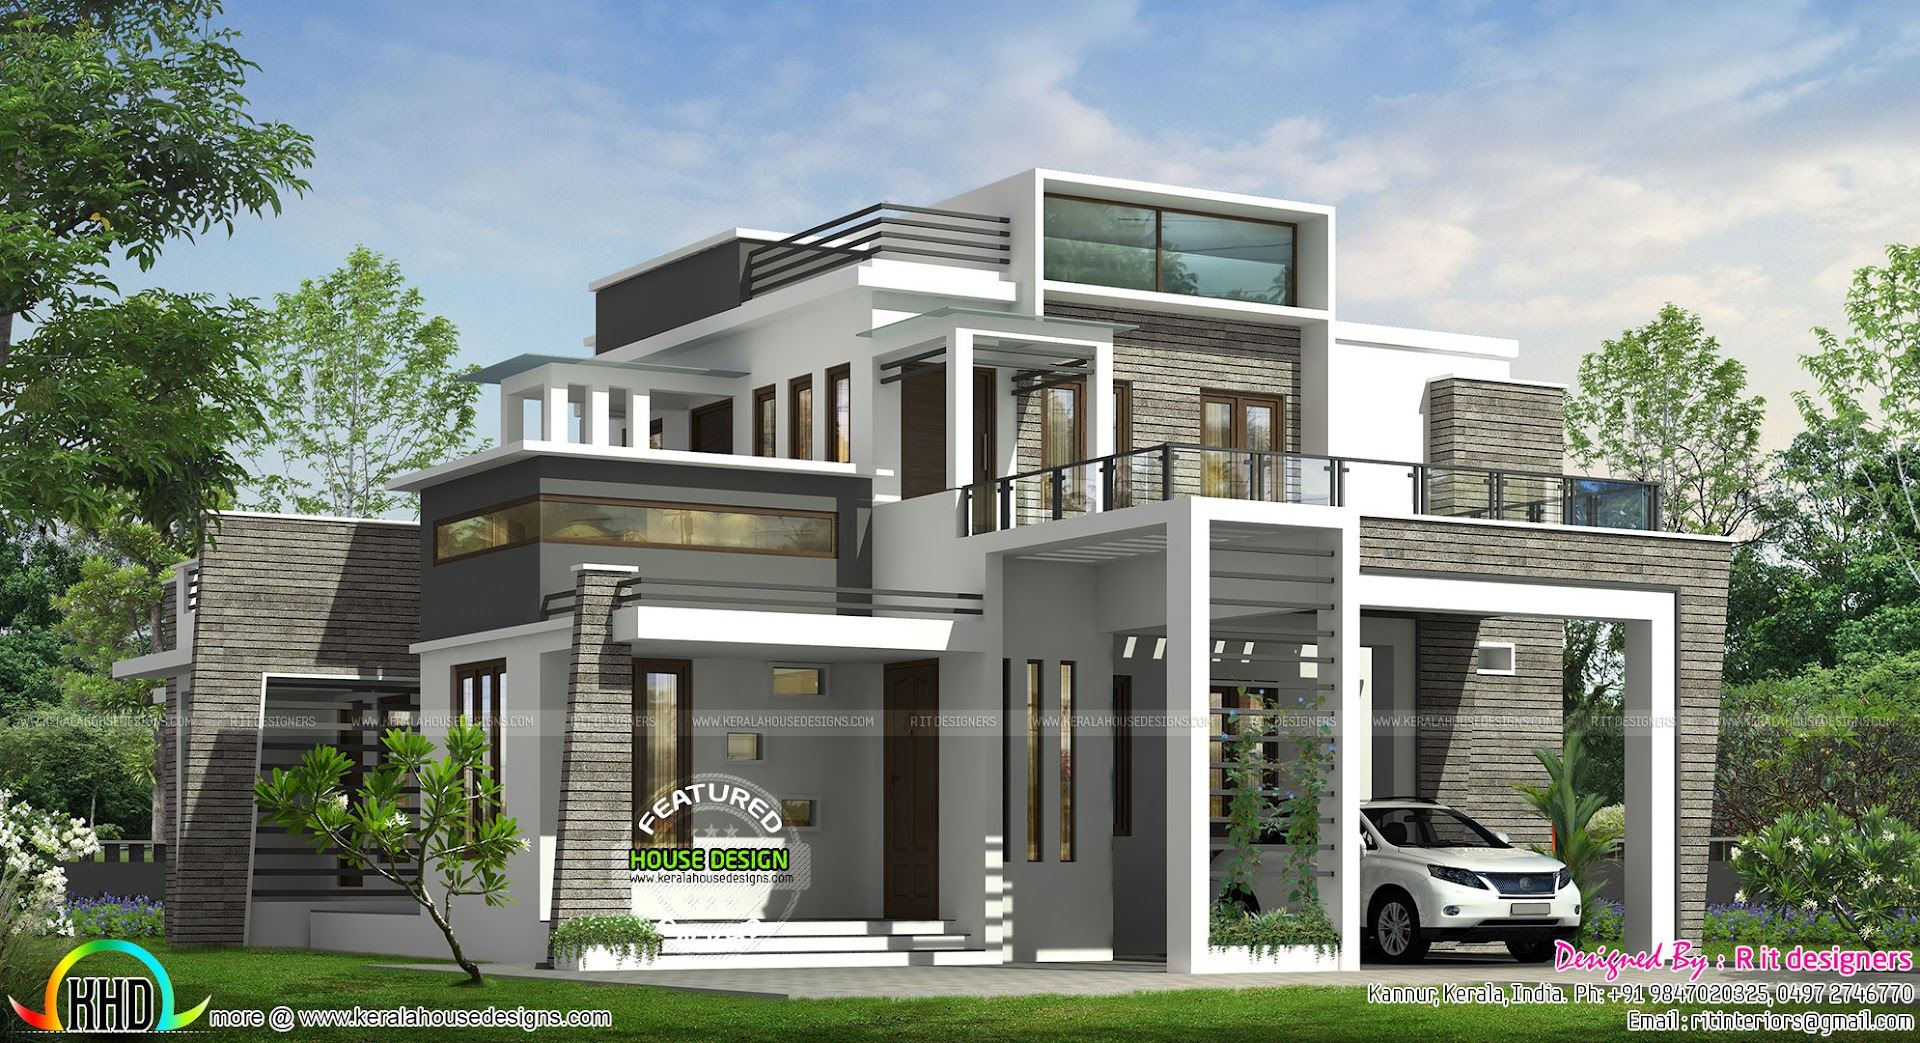 4 bhk modern box type house kerala home design and floor for Modern kerala style house plans with photos